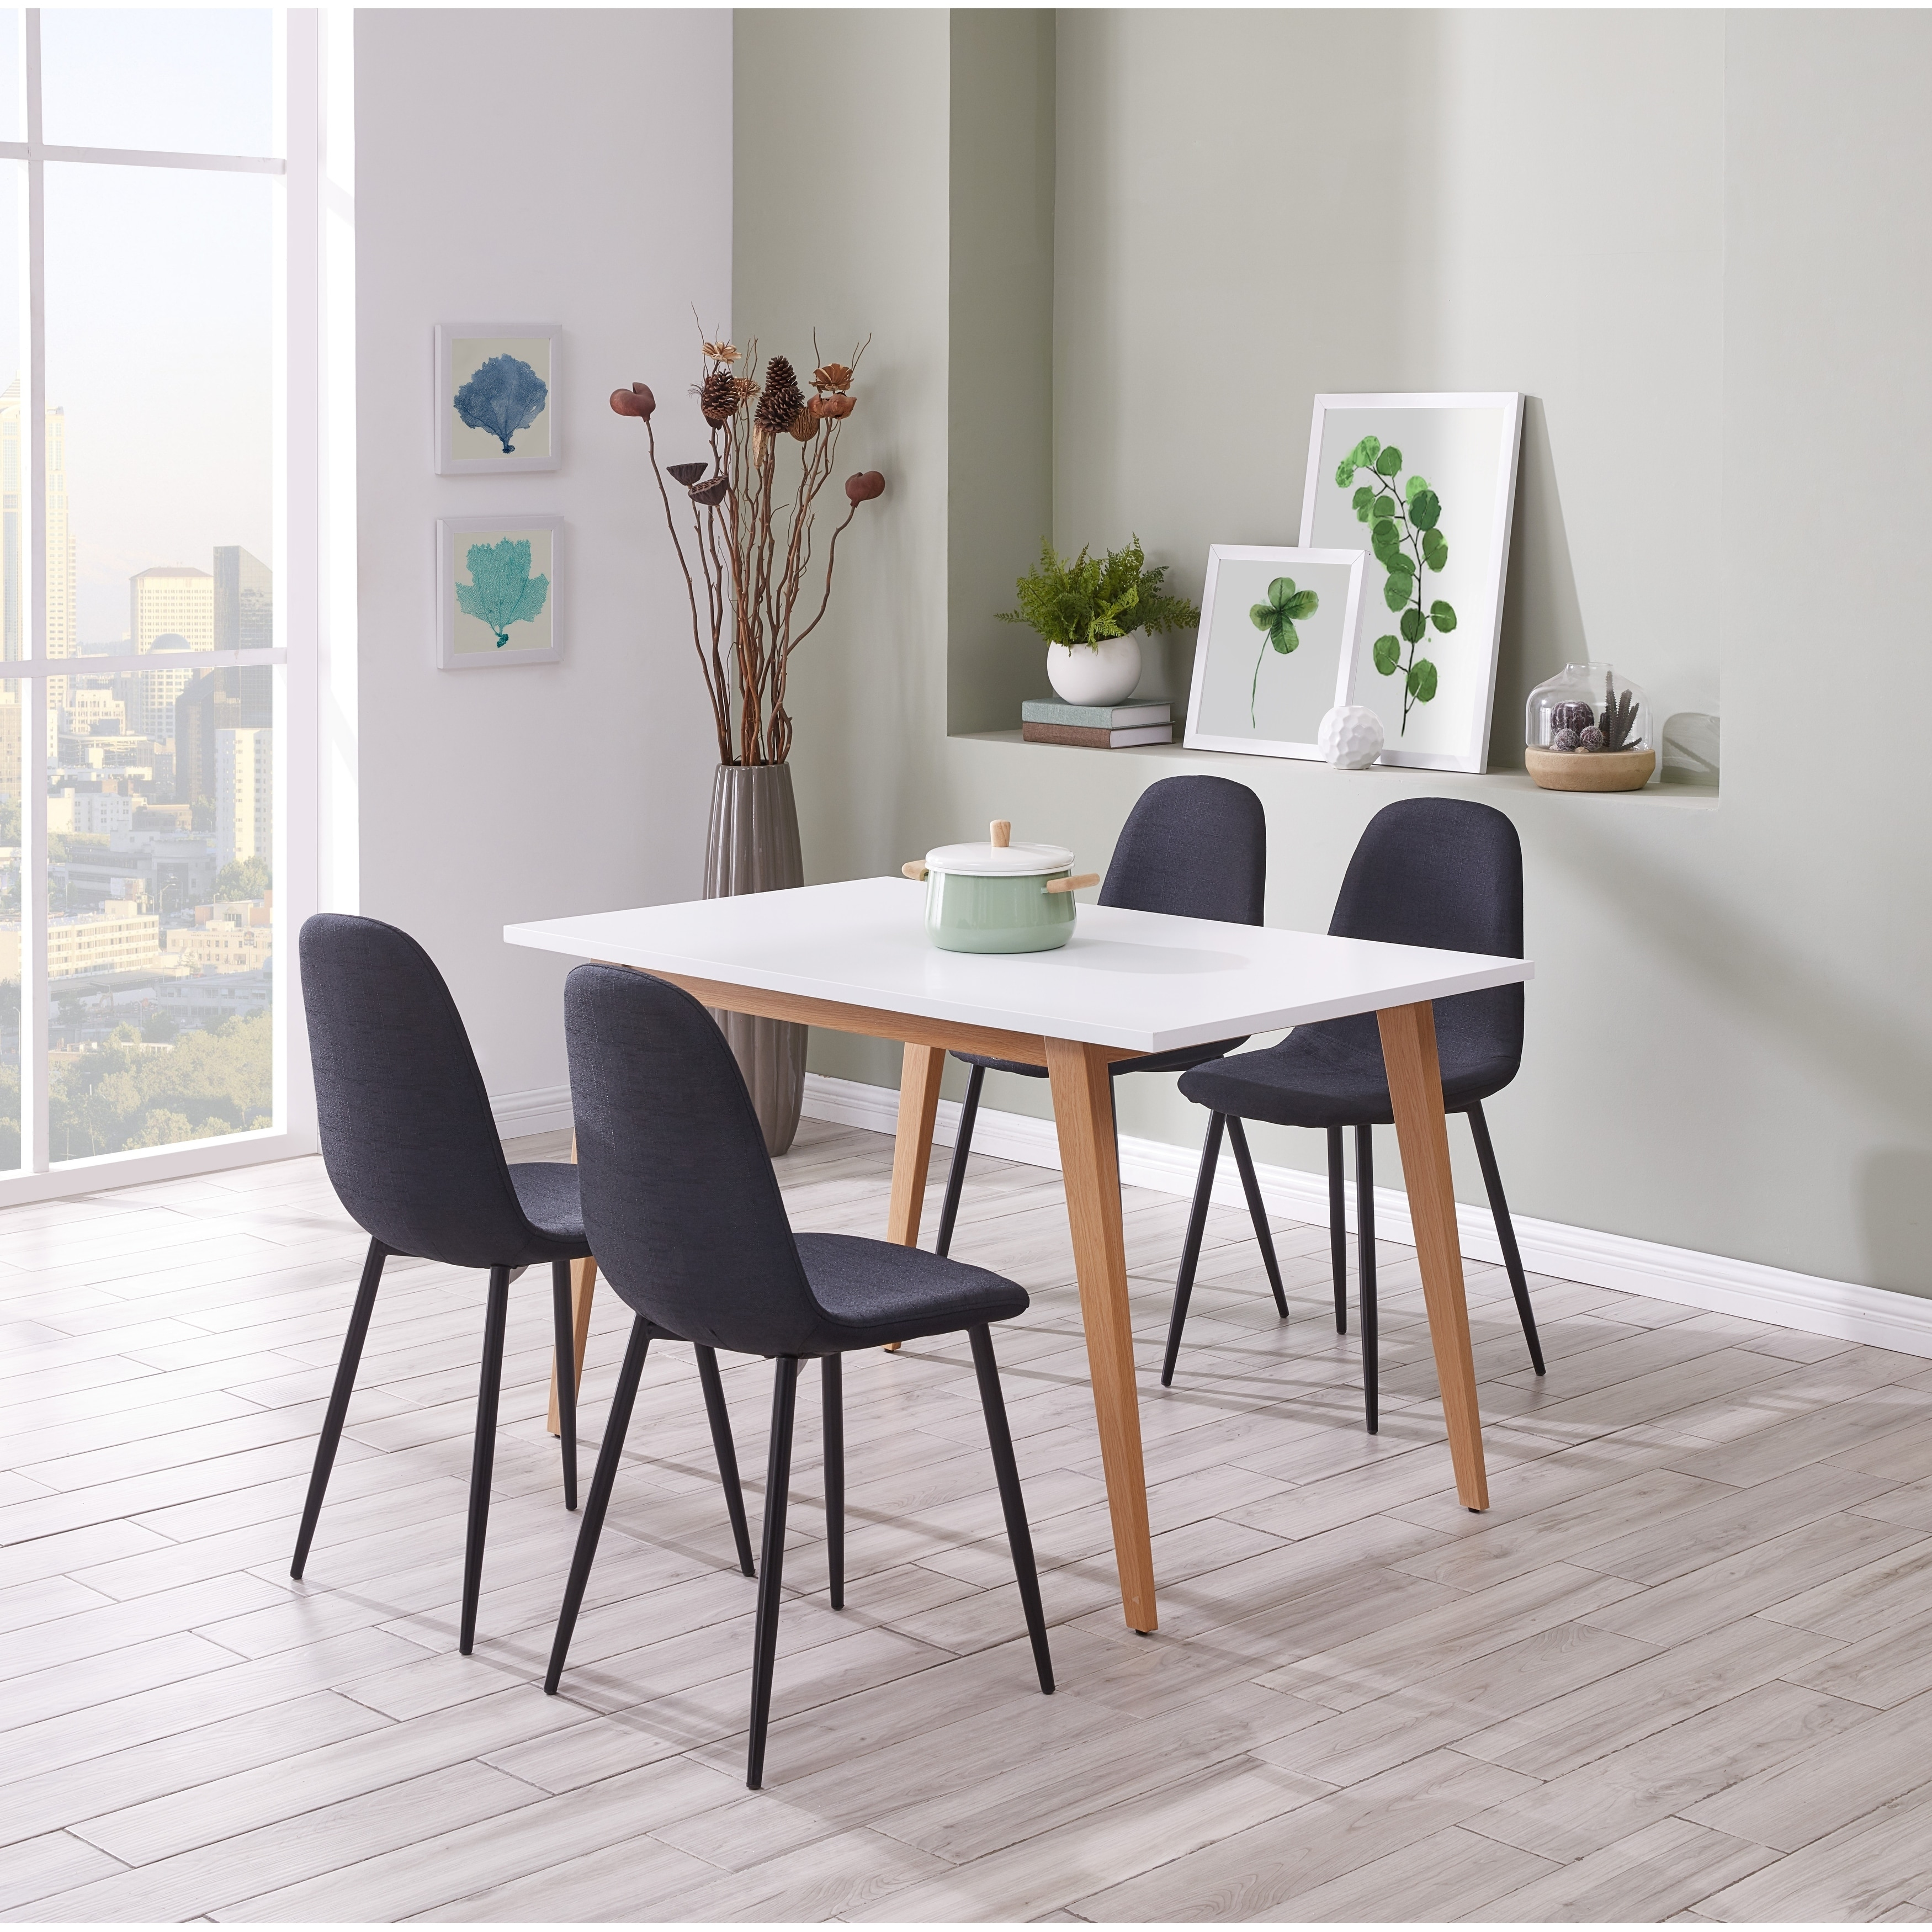 Shop ids online minimalism style 7 pcs white dining table set on sale free shipping today overstock 26061018